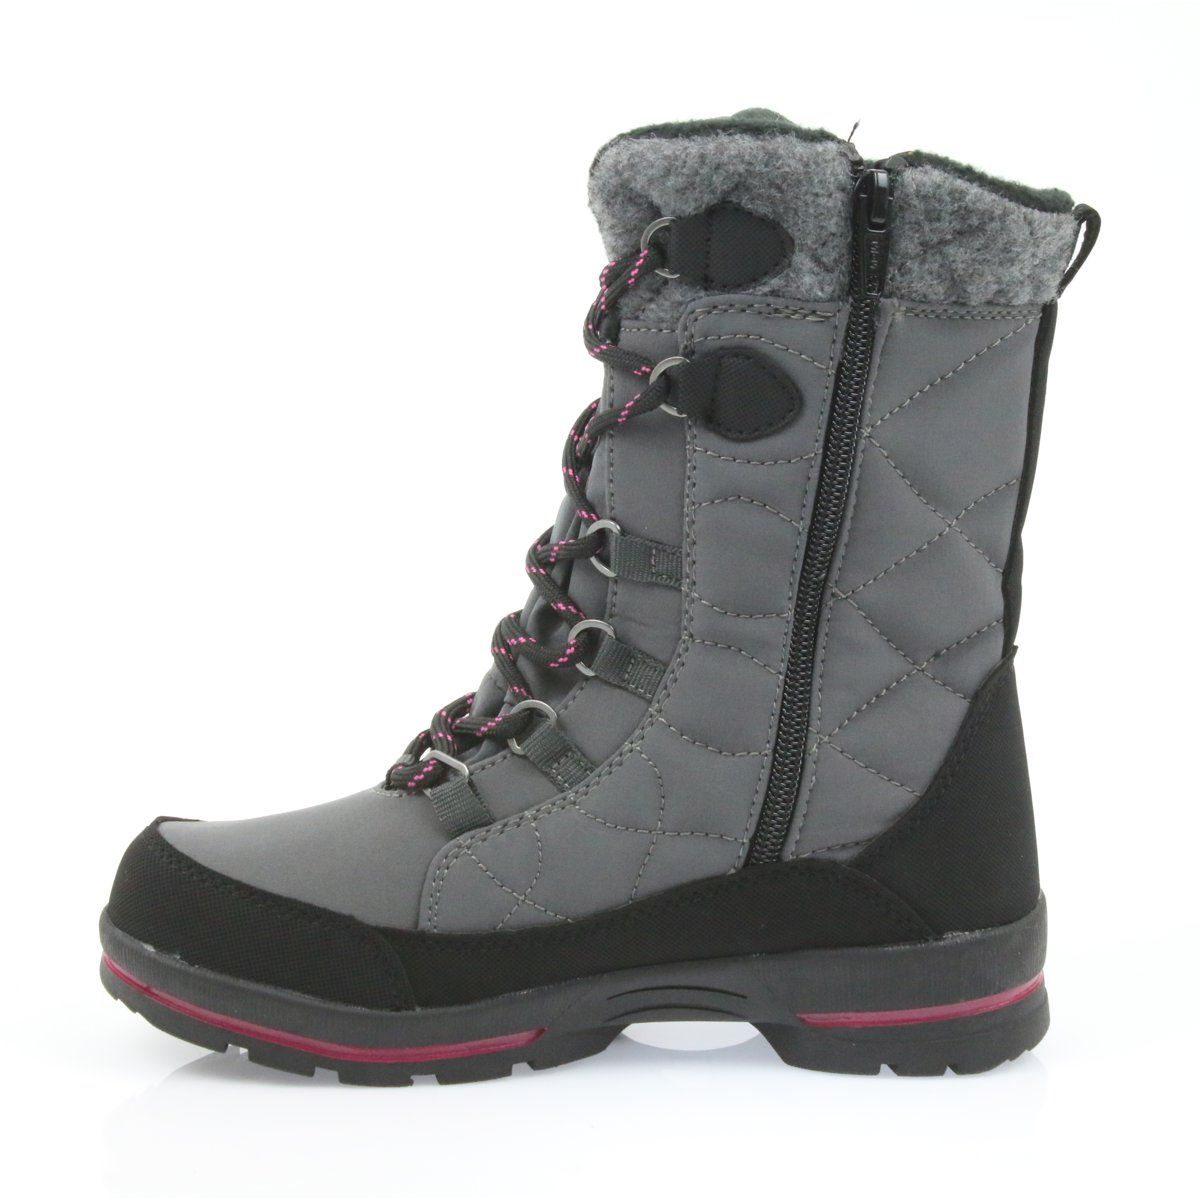 American Club Softshell Snow Boots With American Sn19 20 Membrane Black Pink Grey Boots Childrens Boots Snow Boots